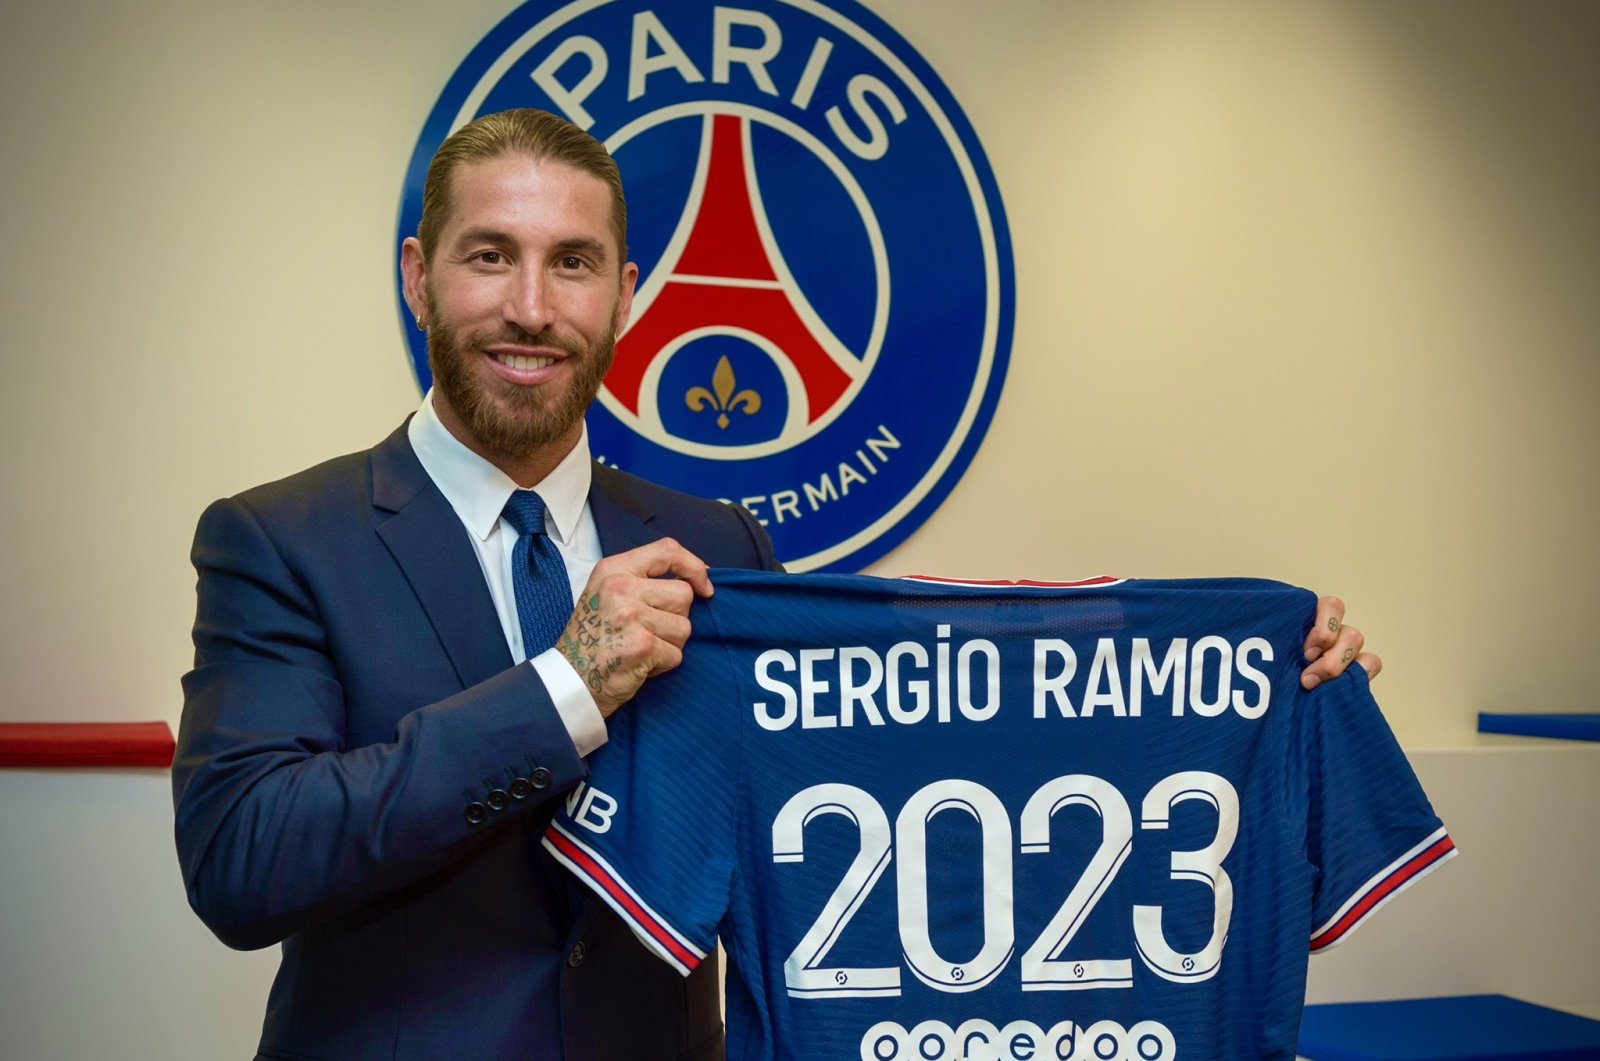 Spanish defender Sergio Ramos poses with a PSG jersey after completing his move to the Ligue 1 club, Paris, France, July 8, 2021. (DHA Photo)